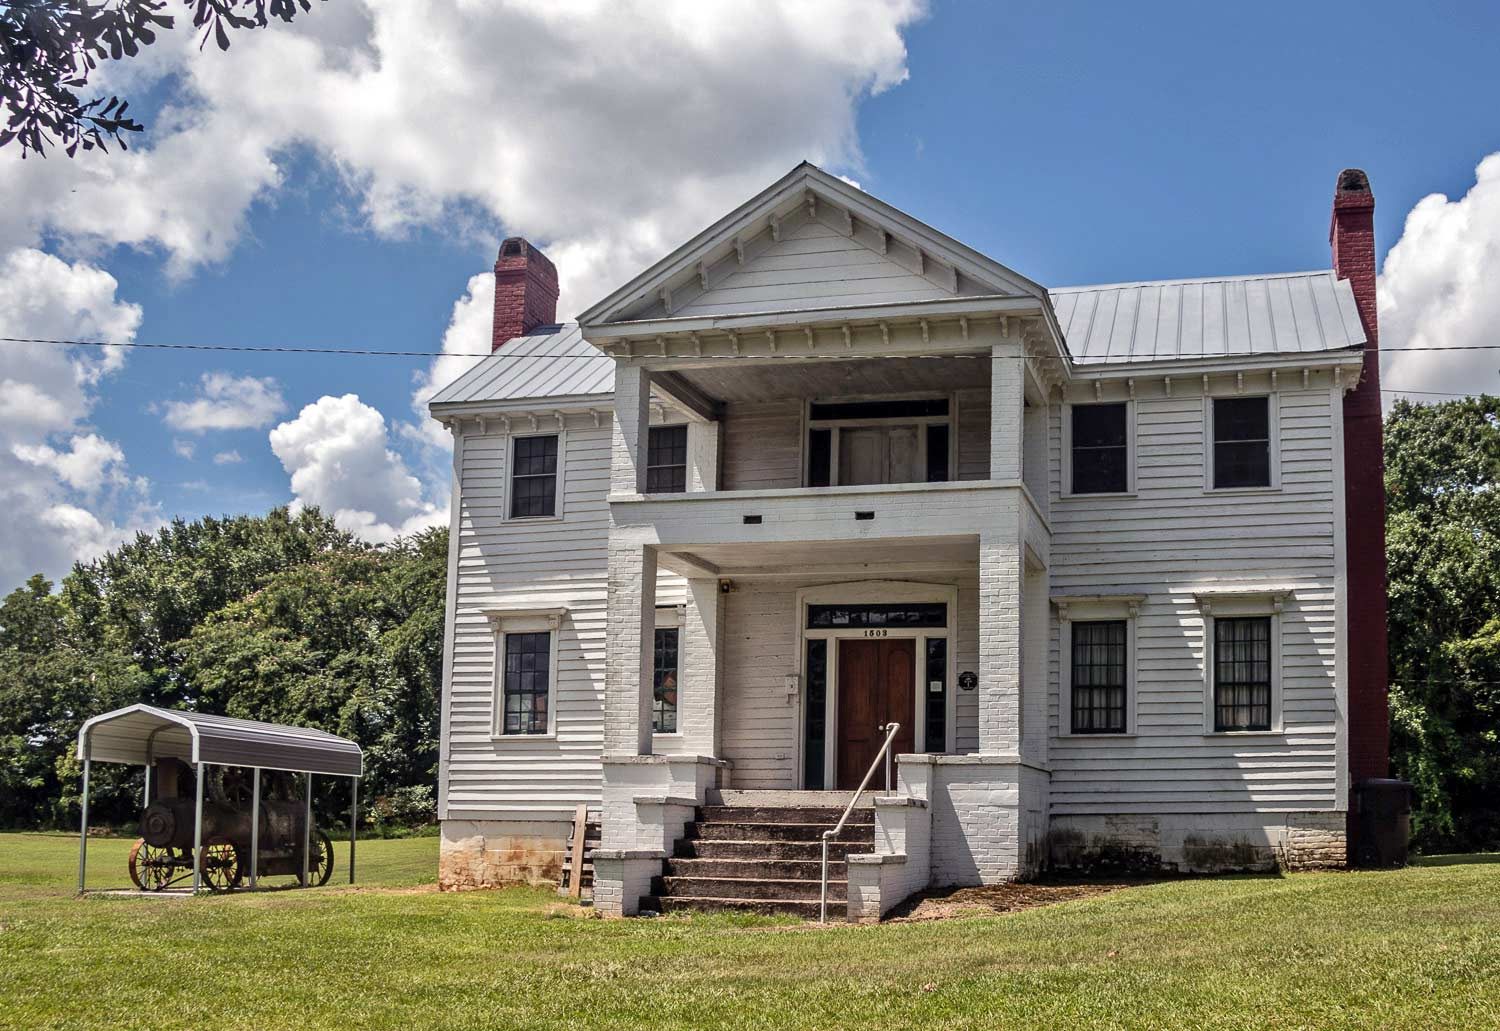 Coppack House in Newberry, South Carolina